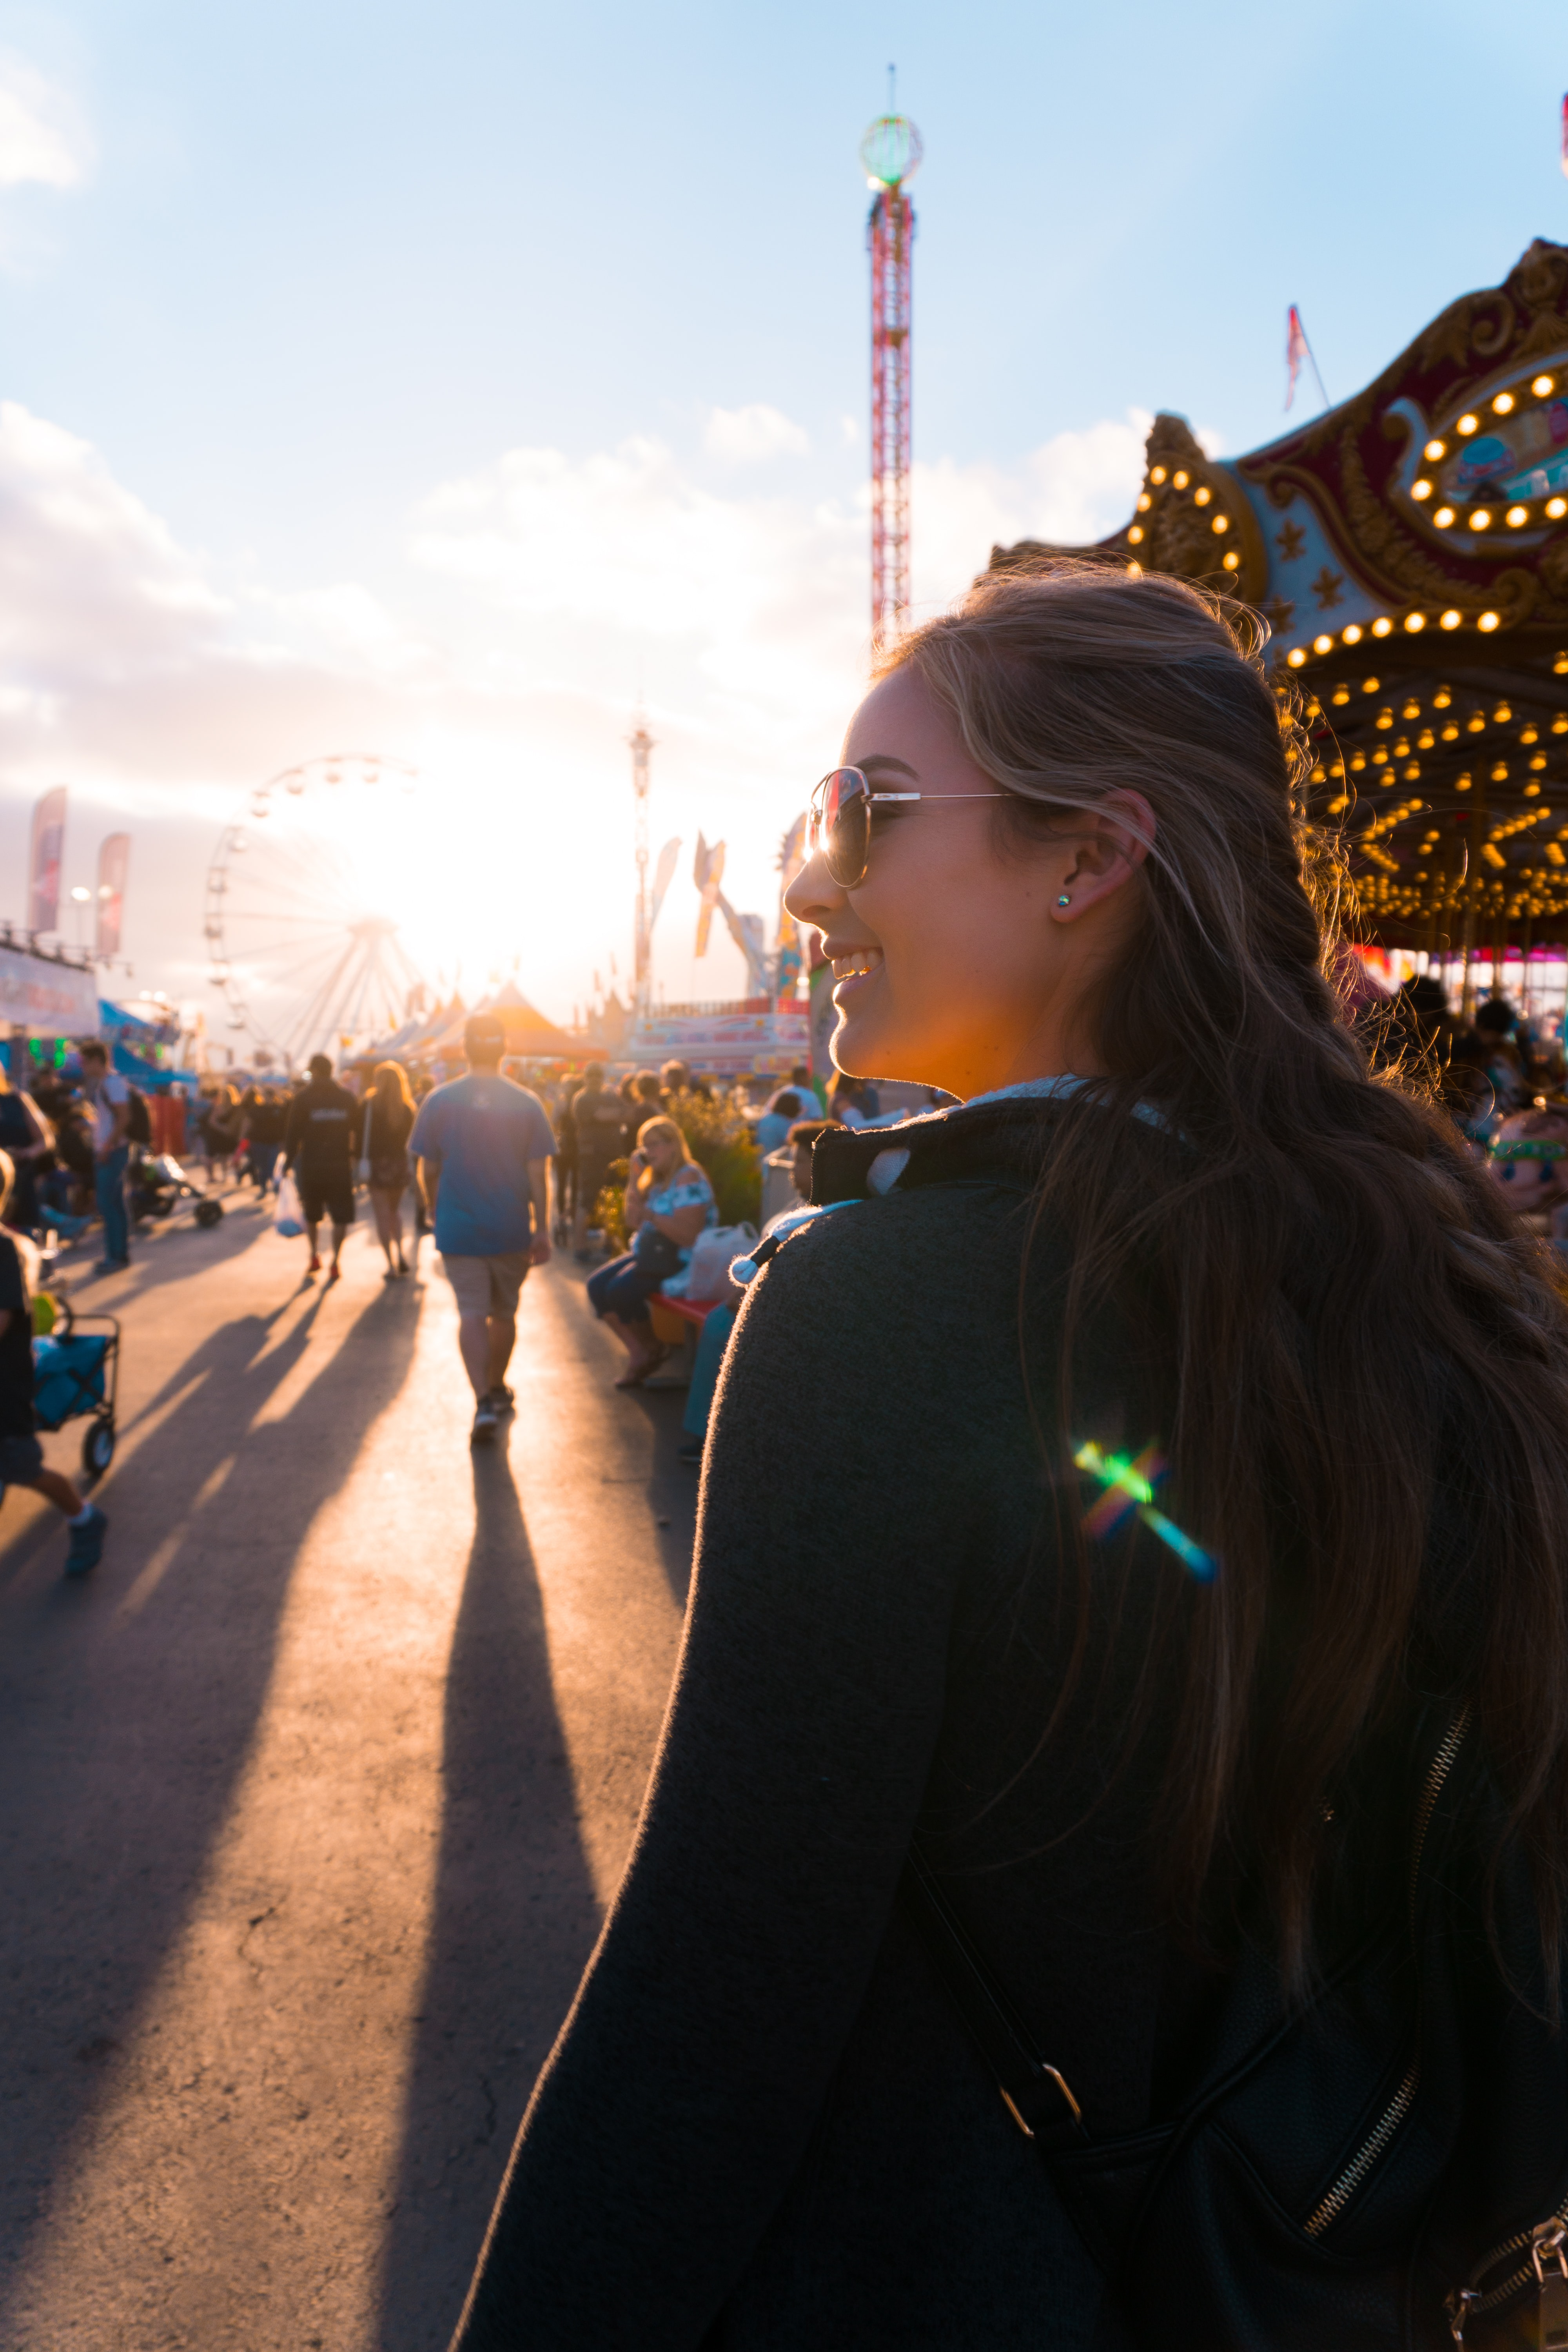 woman wearing sunglasses on themed park